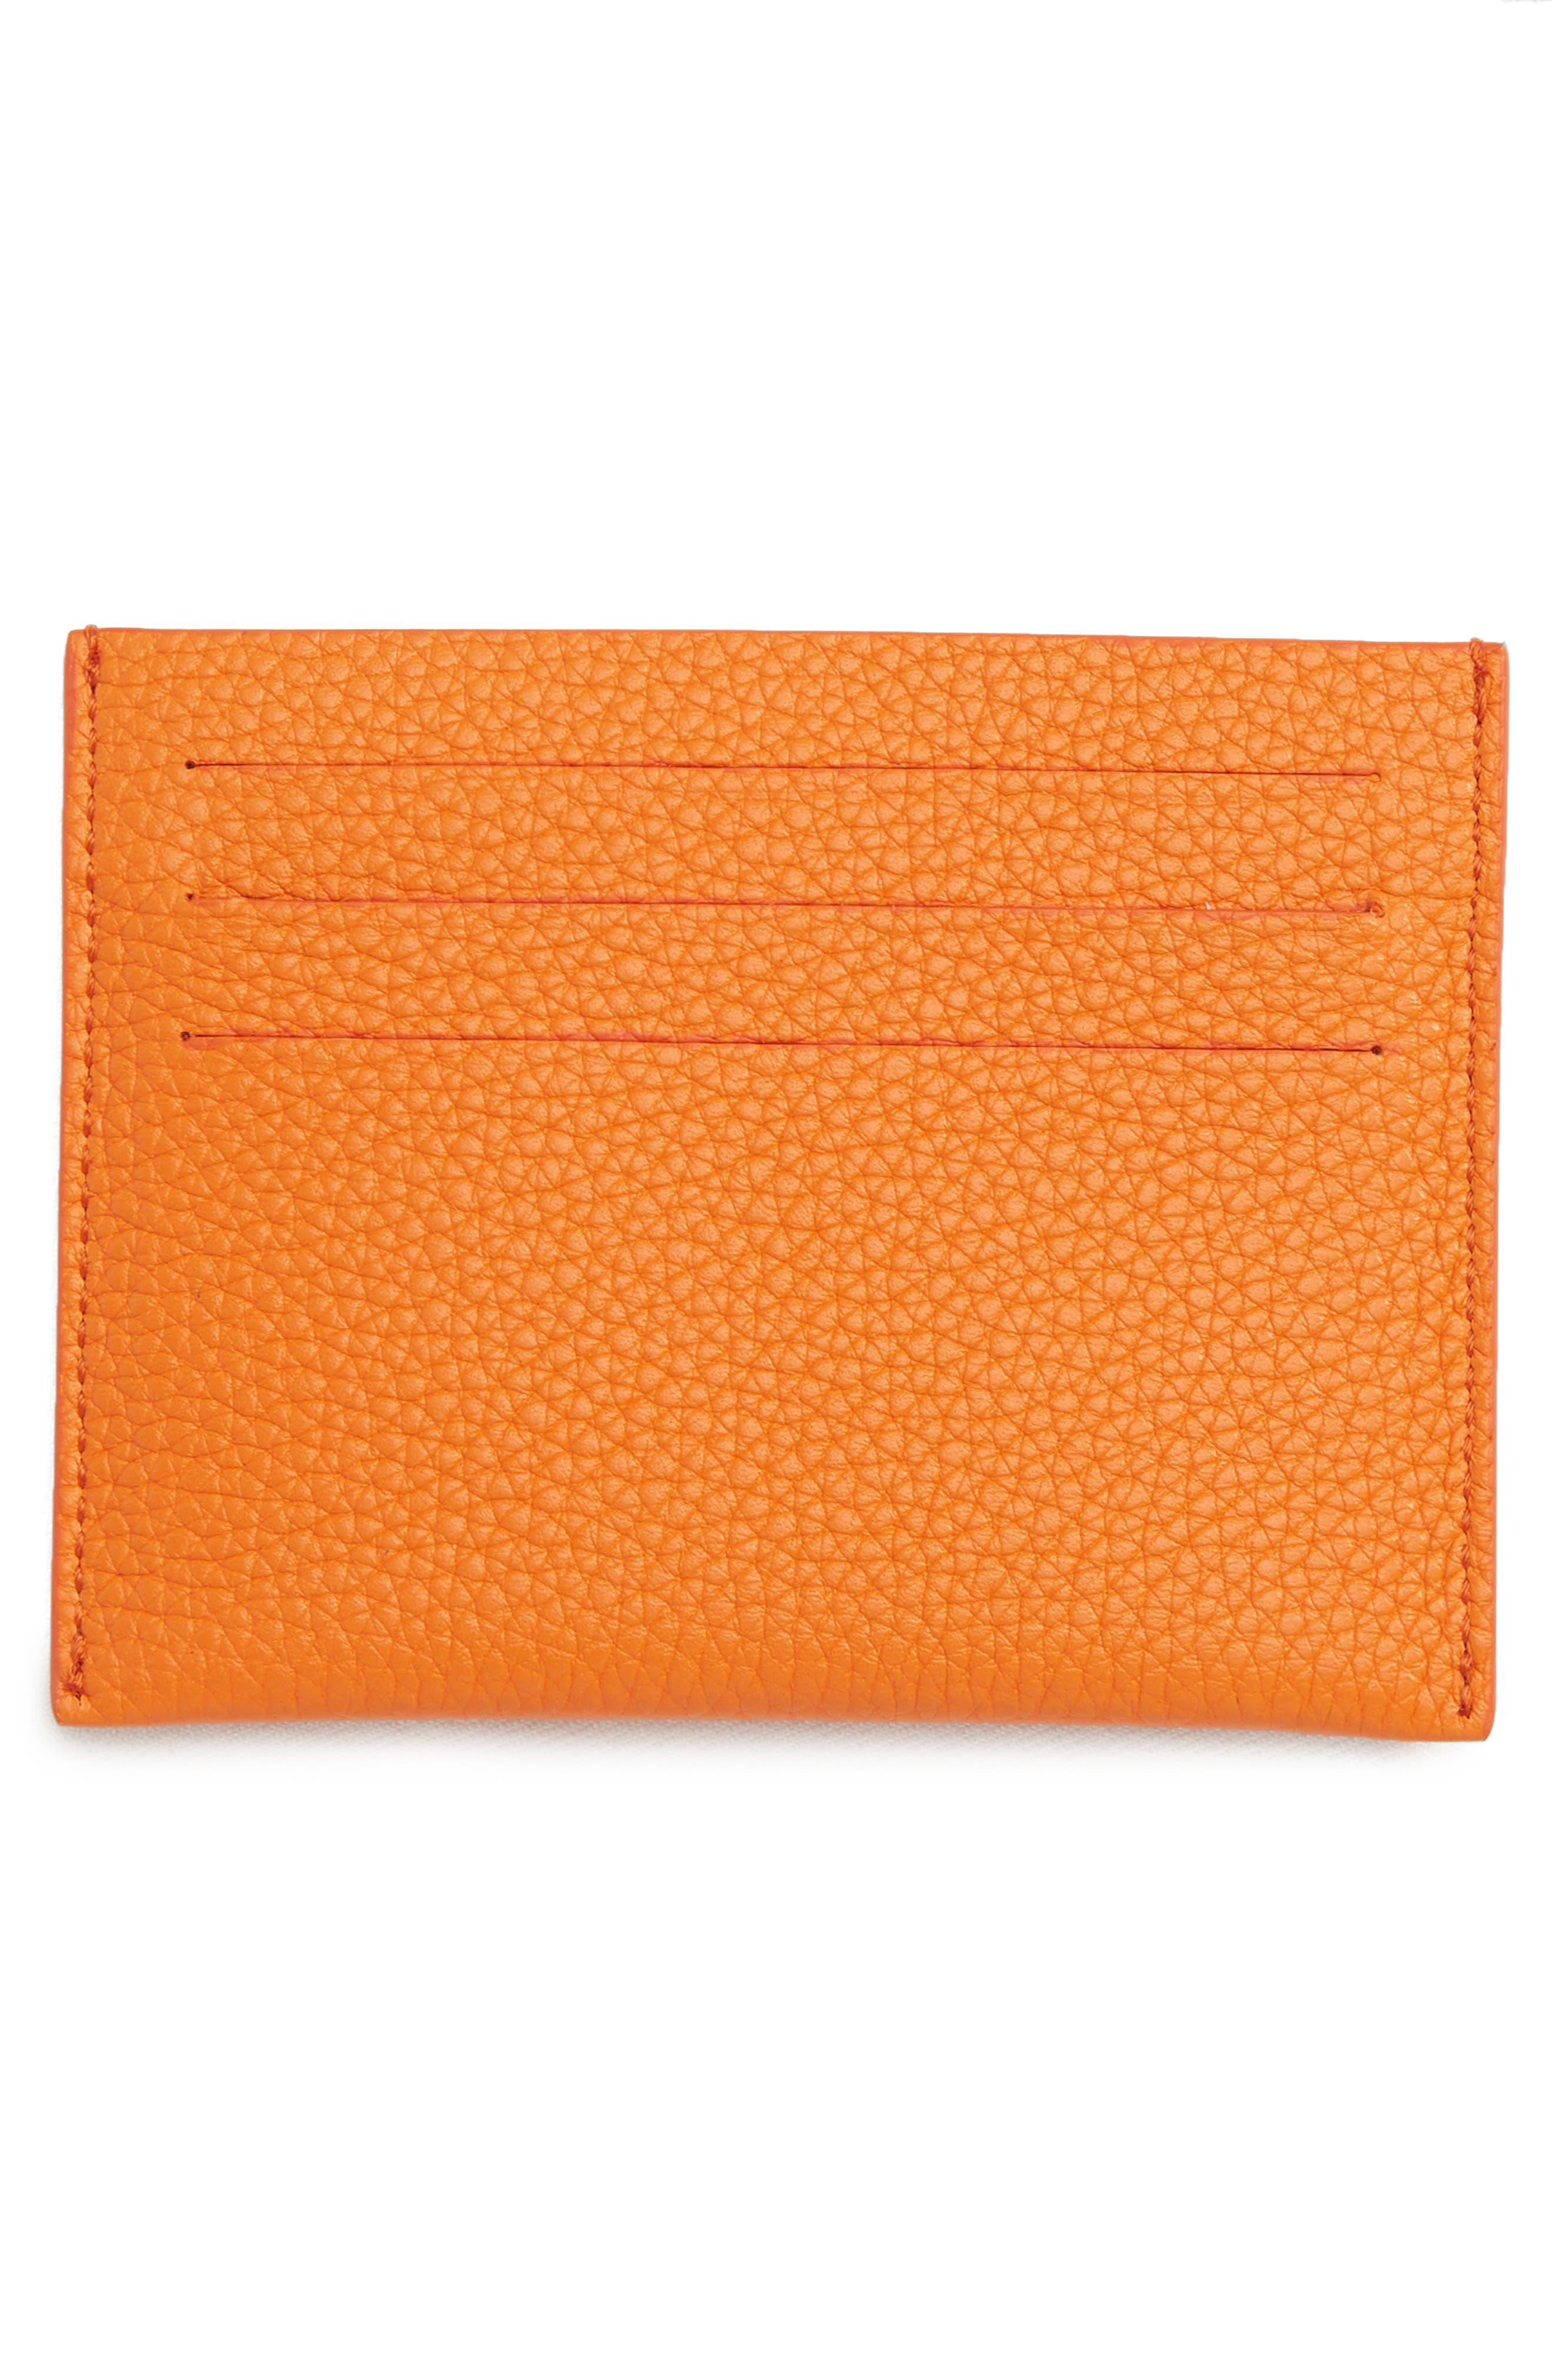 Alternate Image 2  - Givenchy Leather Card Case